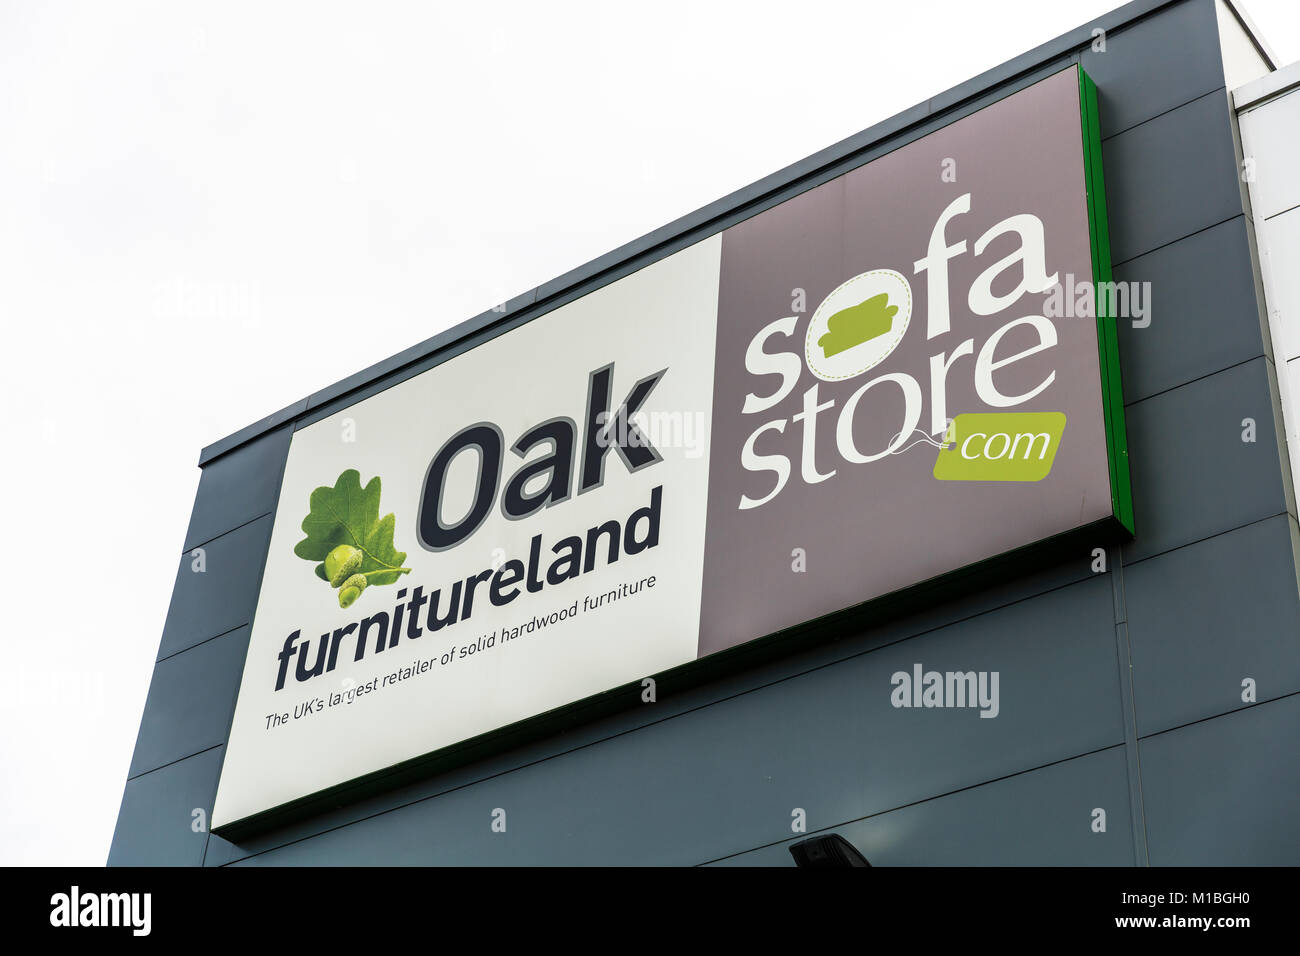 Oak Furniture Imágenes De Stock & Oak Furniture Fotos De Stock - Alamy